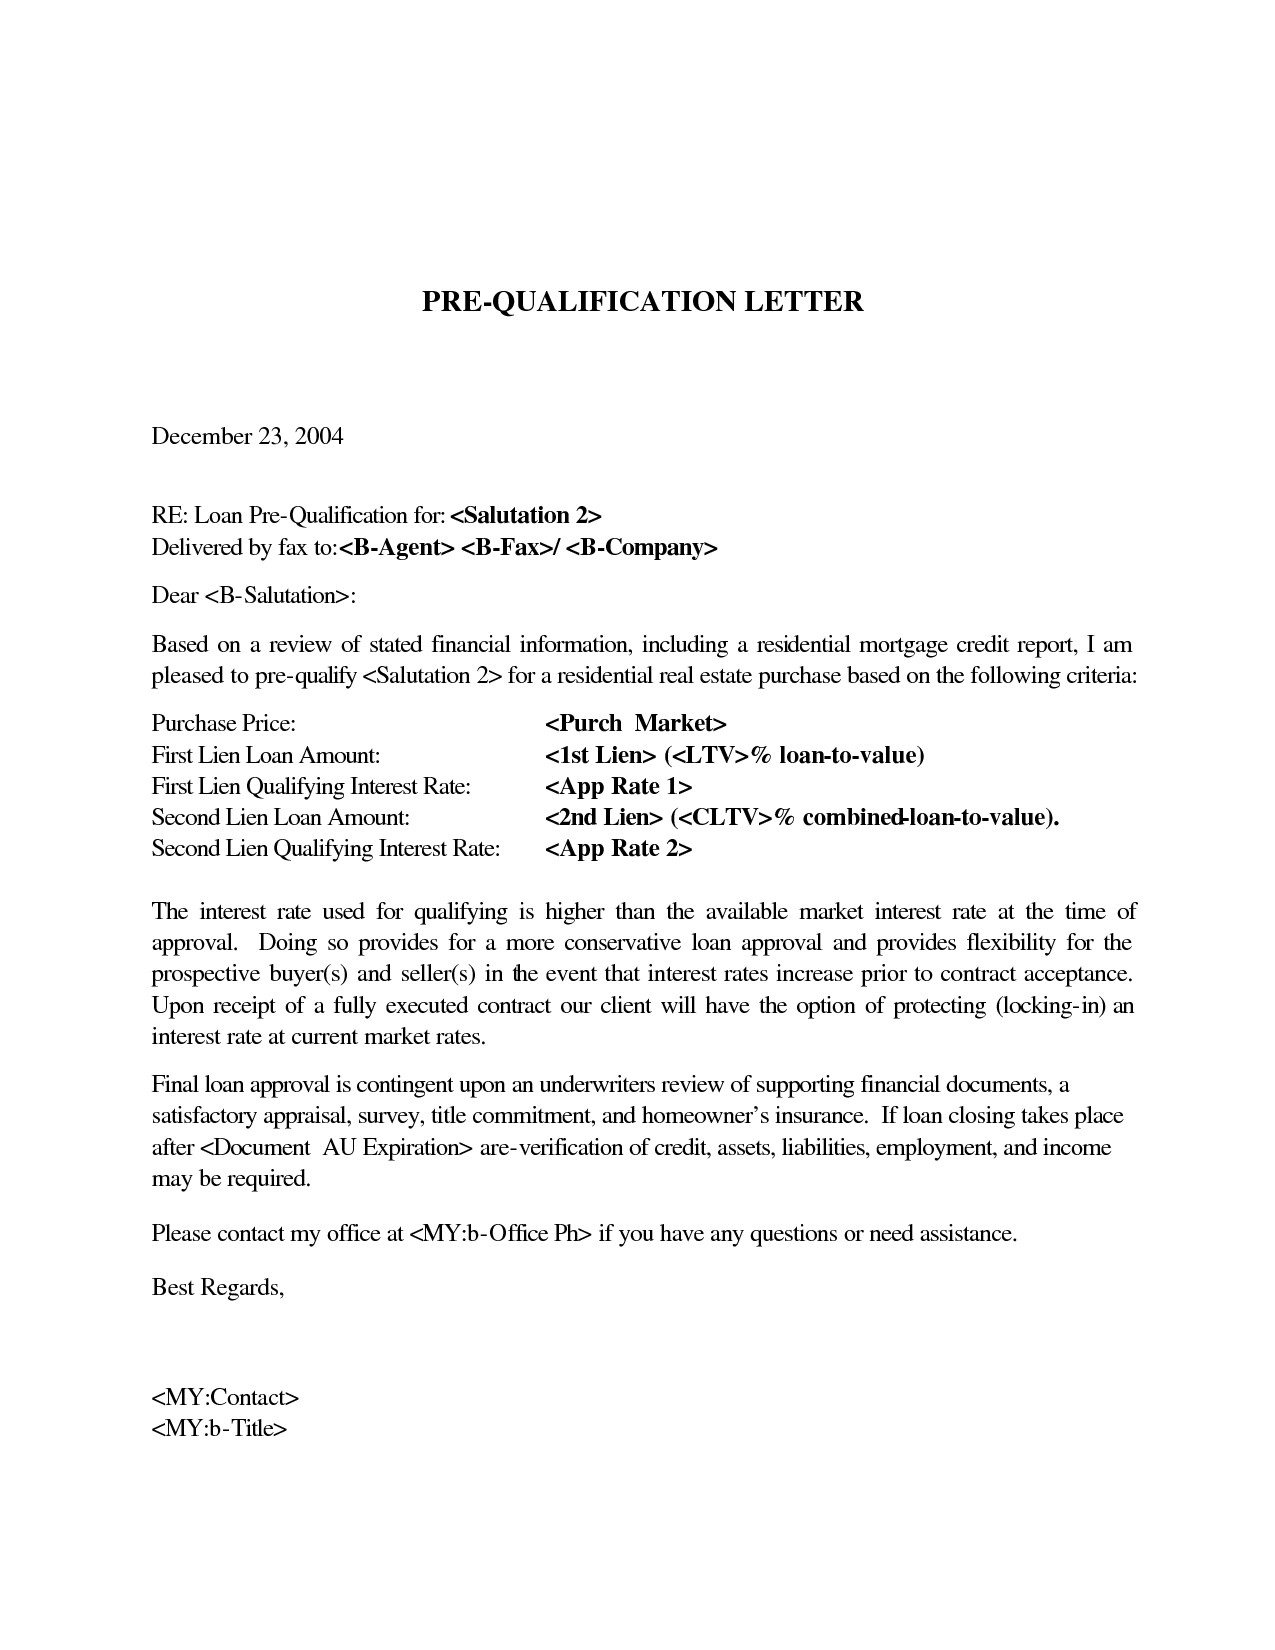 Loan Approval Letter Template - Pre Approval Letter Sample New Dental assistant Qualifications